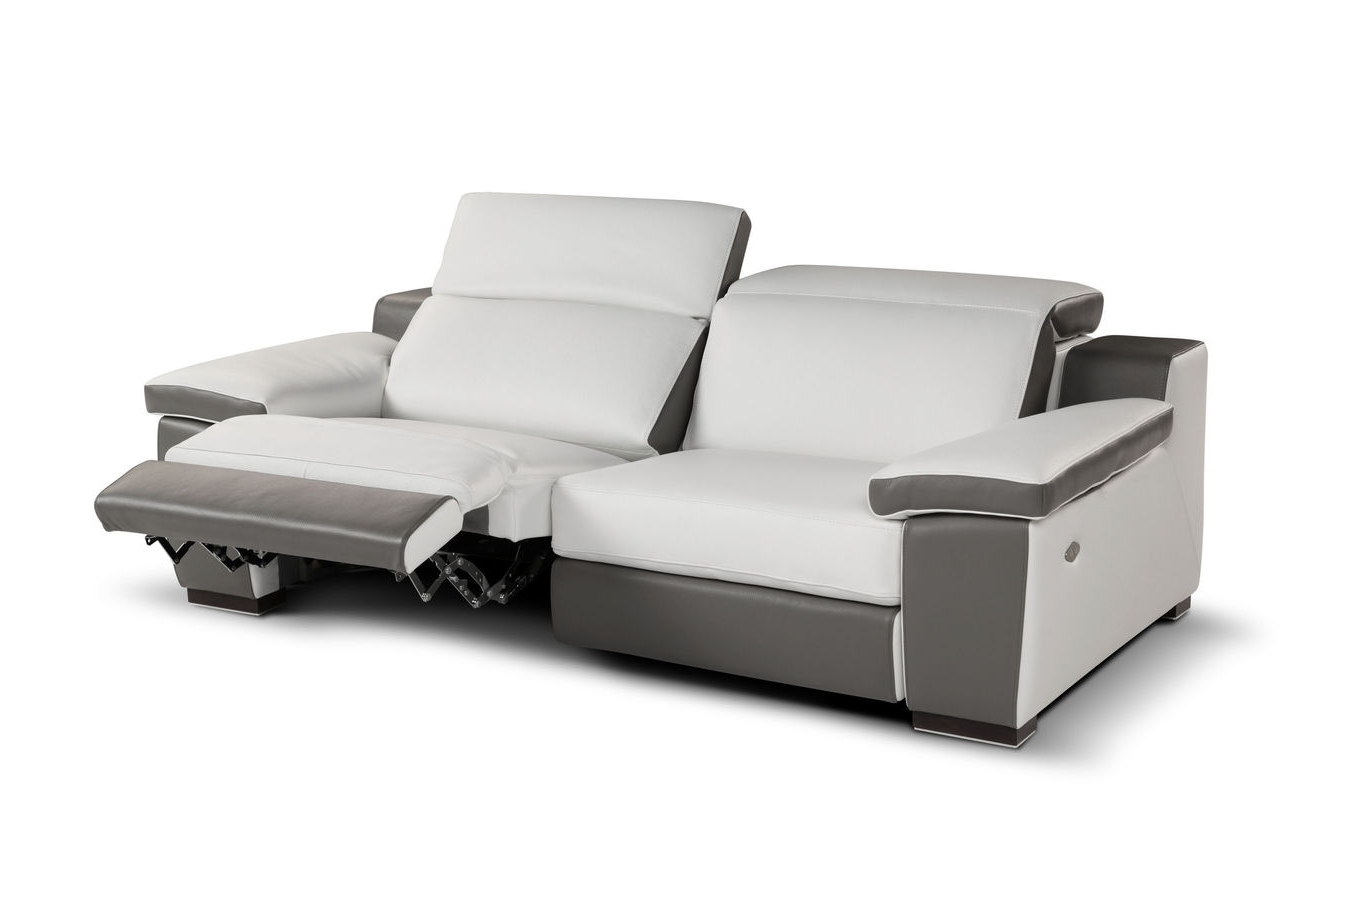 Fashionable Modern Reclining Leather Sofas For Sofa: Remarkable Reclining Leather Sofa Leather Recliners On Sale (View 4 of 15)